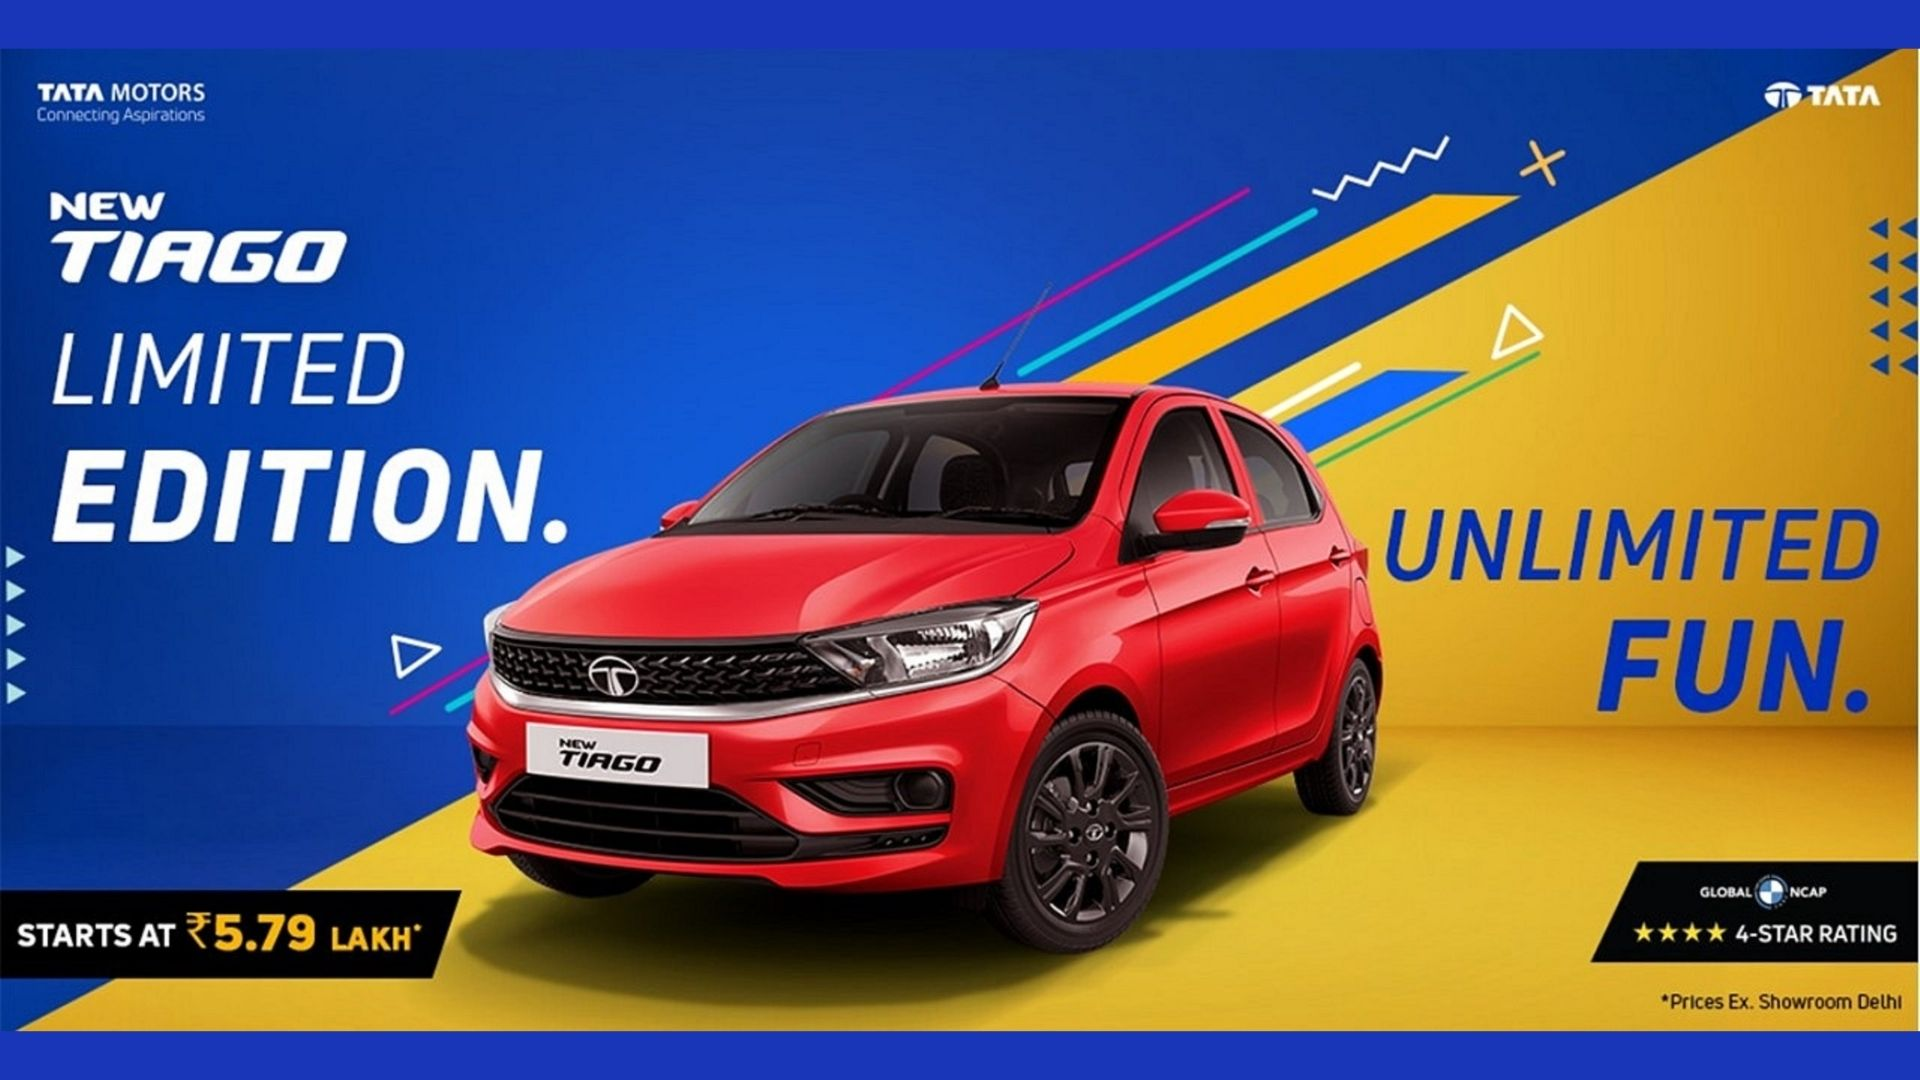 Tata Tiago Limited Edition Launched